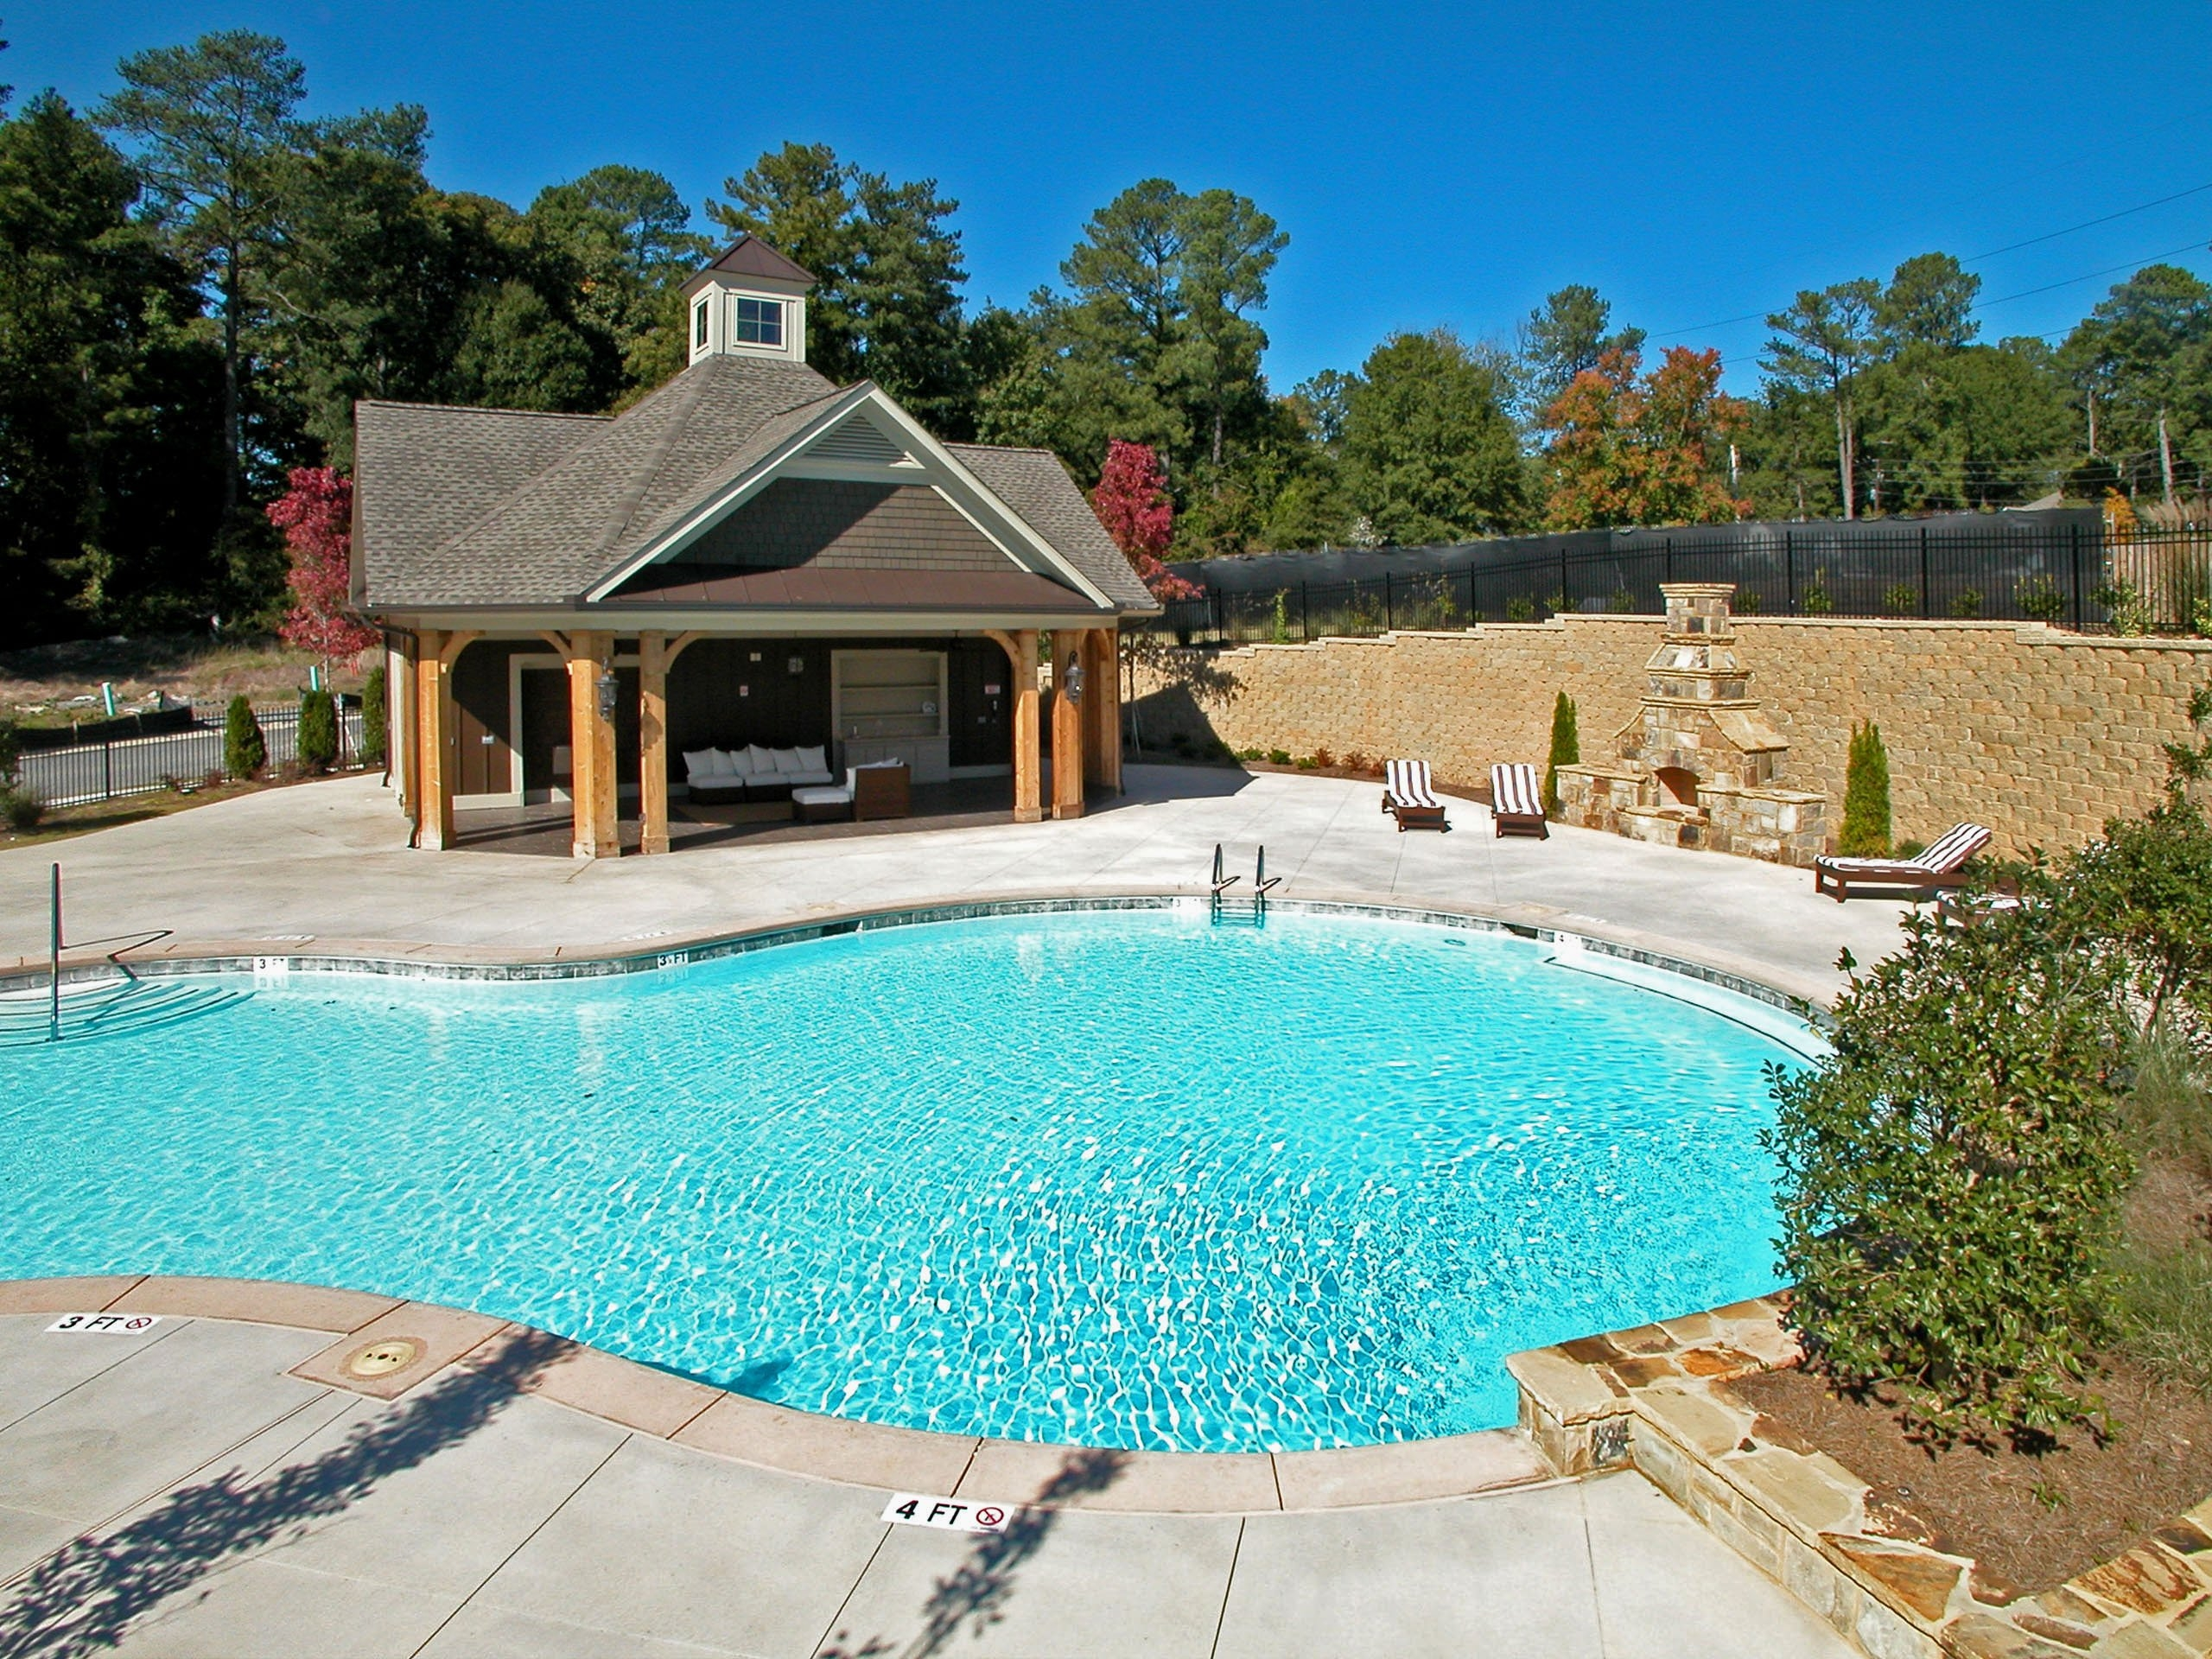 Atlanta townhomes 2 4 tamra wade partners of re max for Pool cabana plans